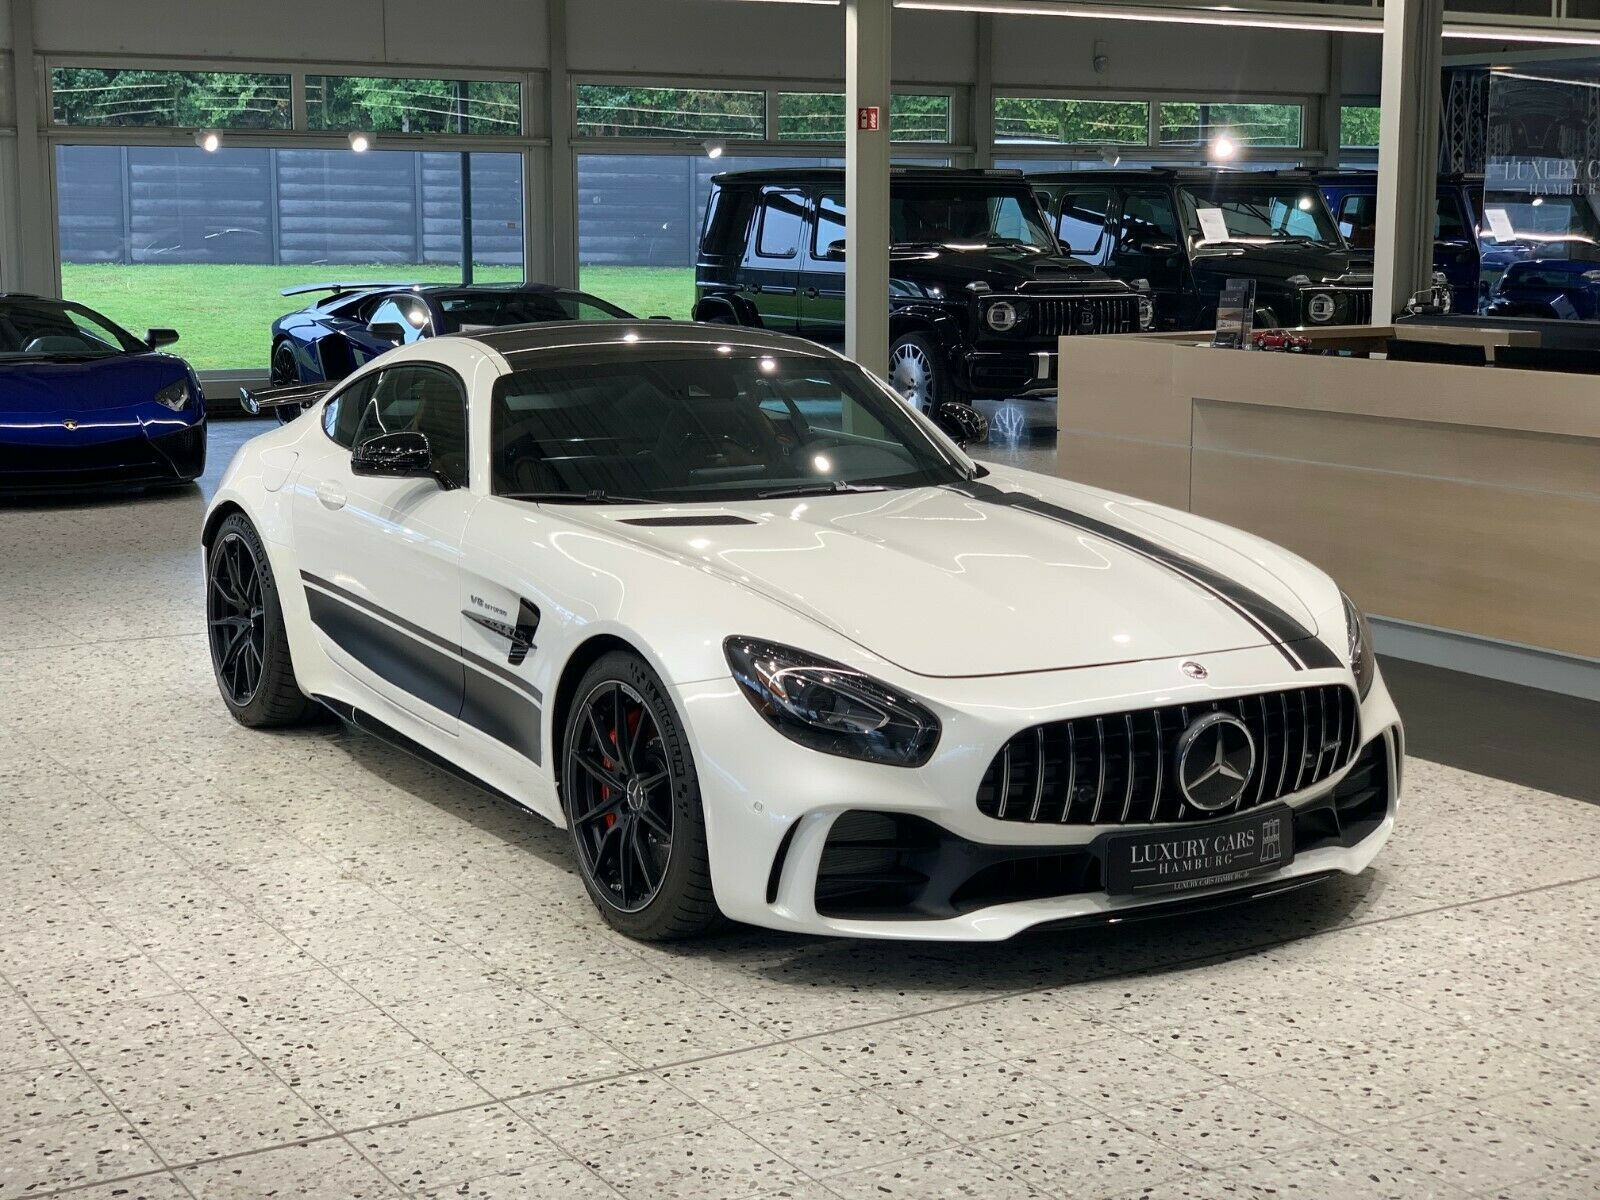 Mercedes Benz Amg Gt R Diamond Luxury Pulse Cars Germany For Sale On Luxurypulse In 2020 Mercedes Benz Amg Luxury Cars Mercedes Benz